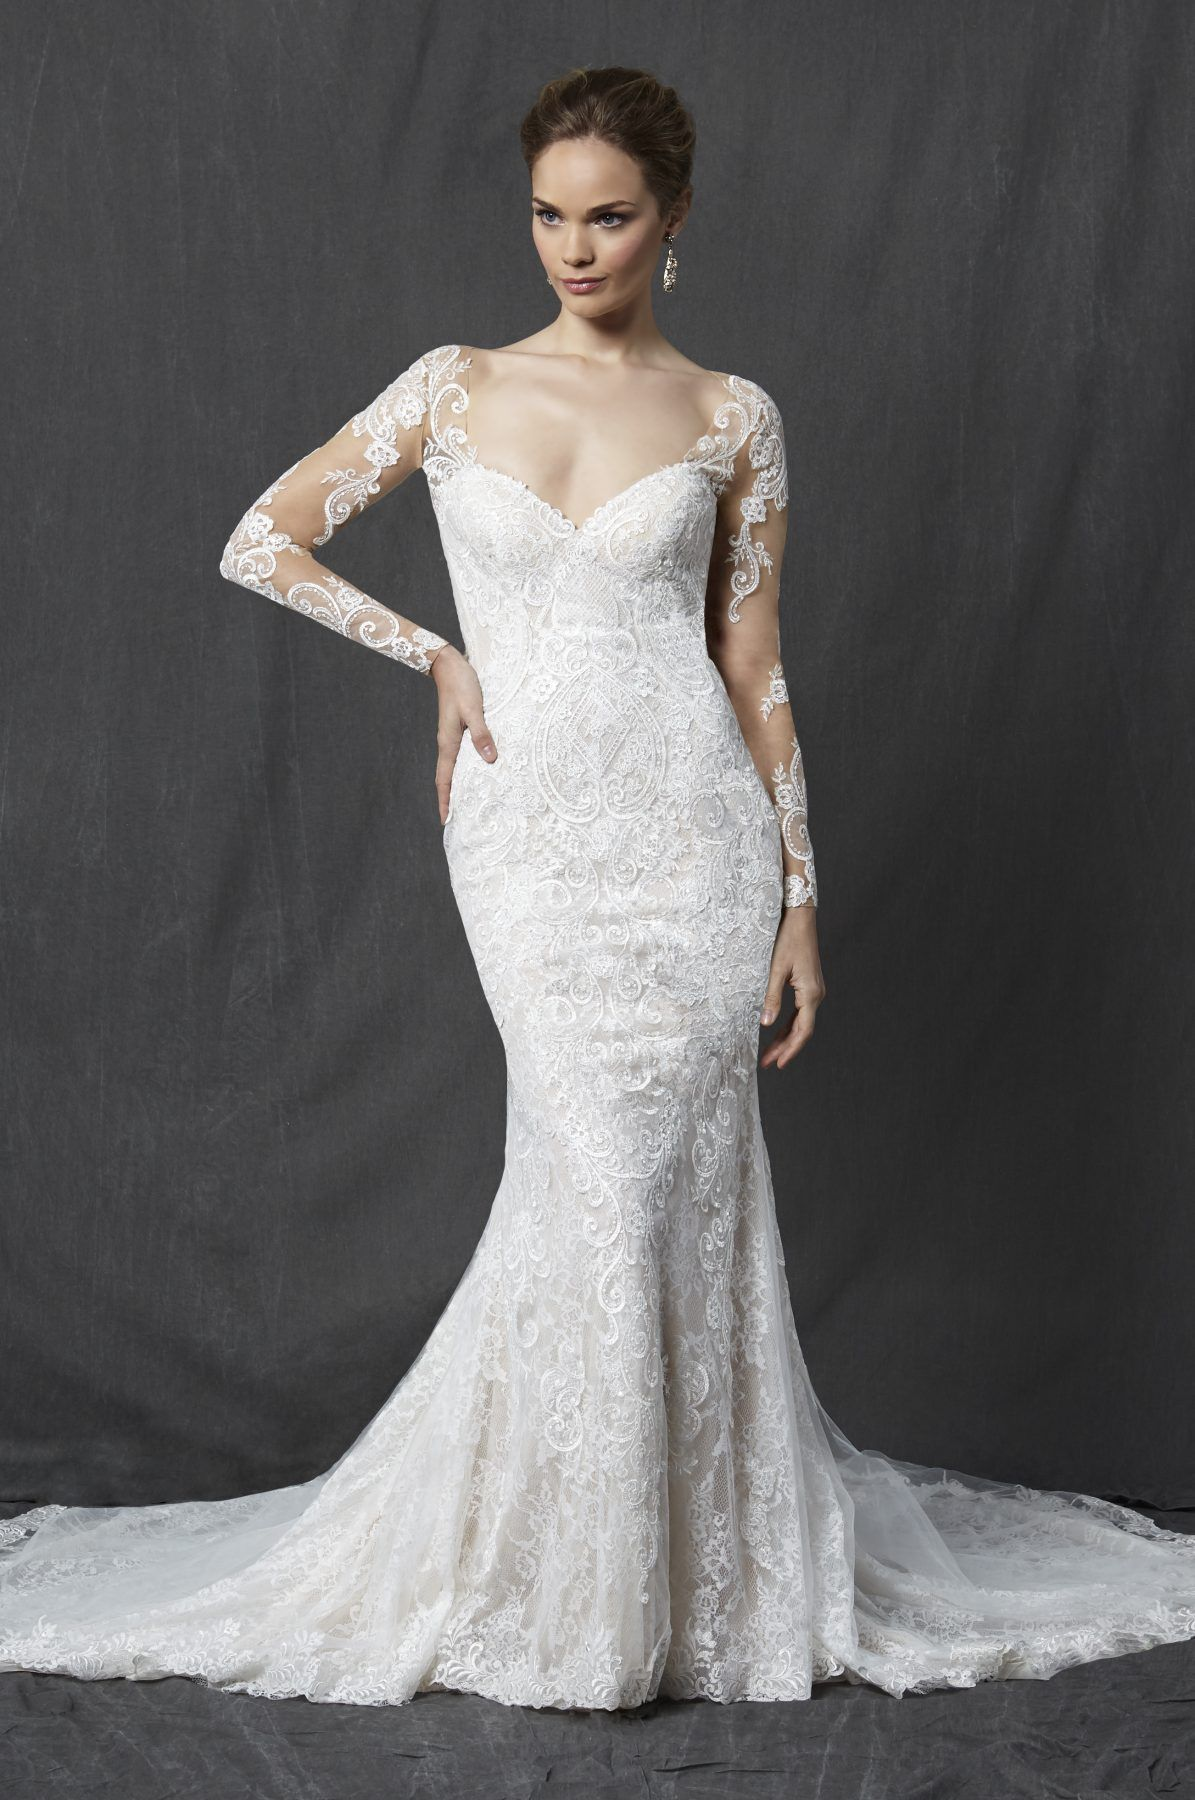 Long sleeve sweetheart full lace sheath wedding dress with illusion